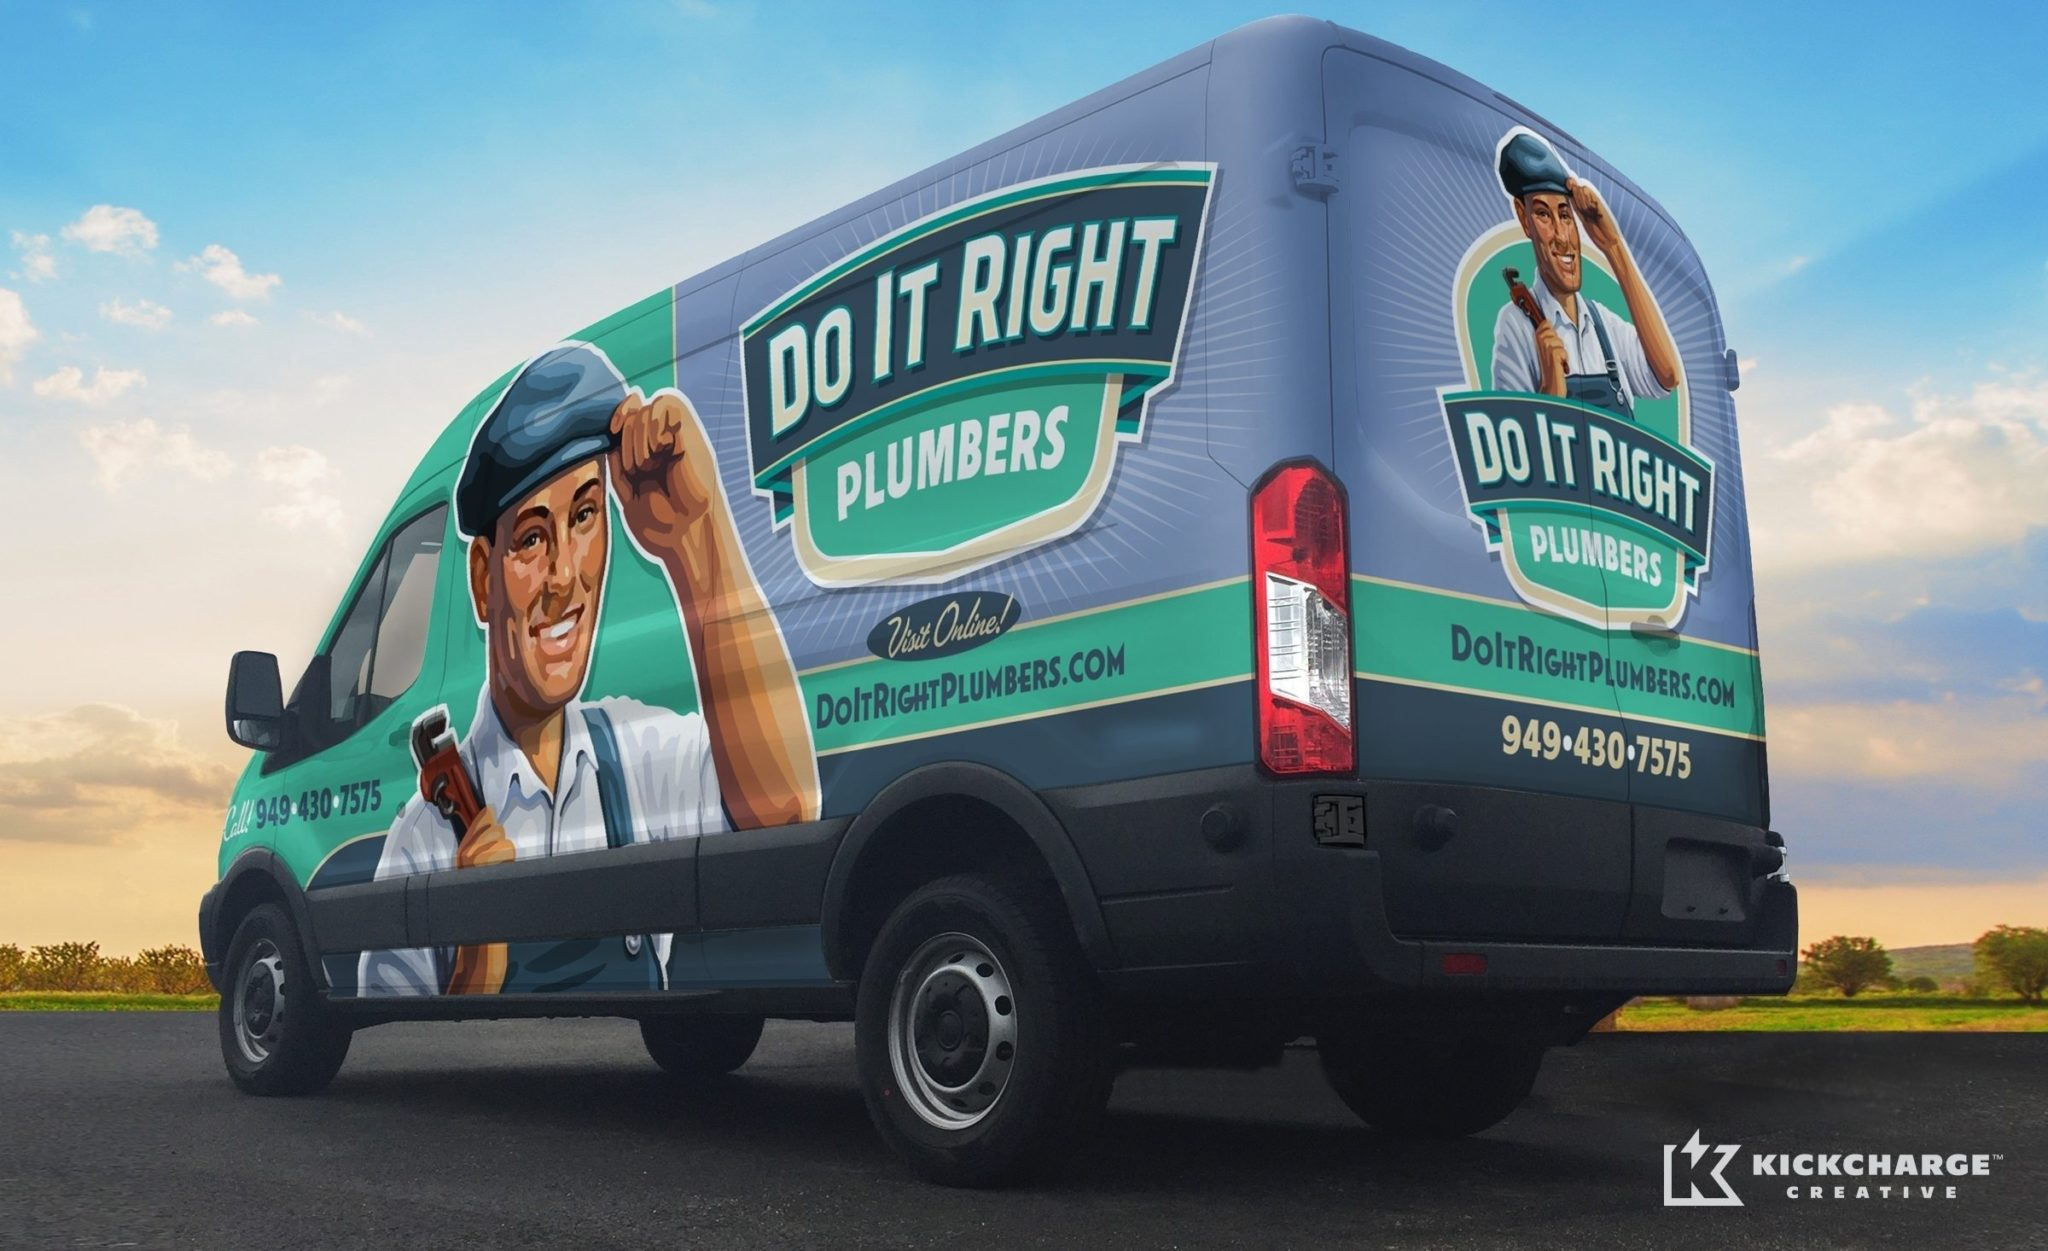 Do It Right Plumbers The Best Vehicle Wraps Use Simple Easy To Read Graphics As This